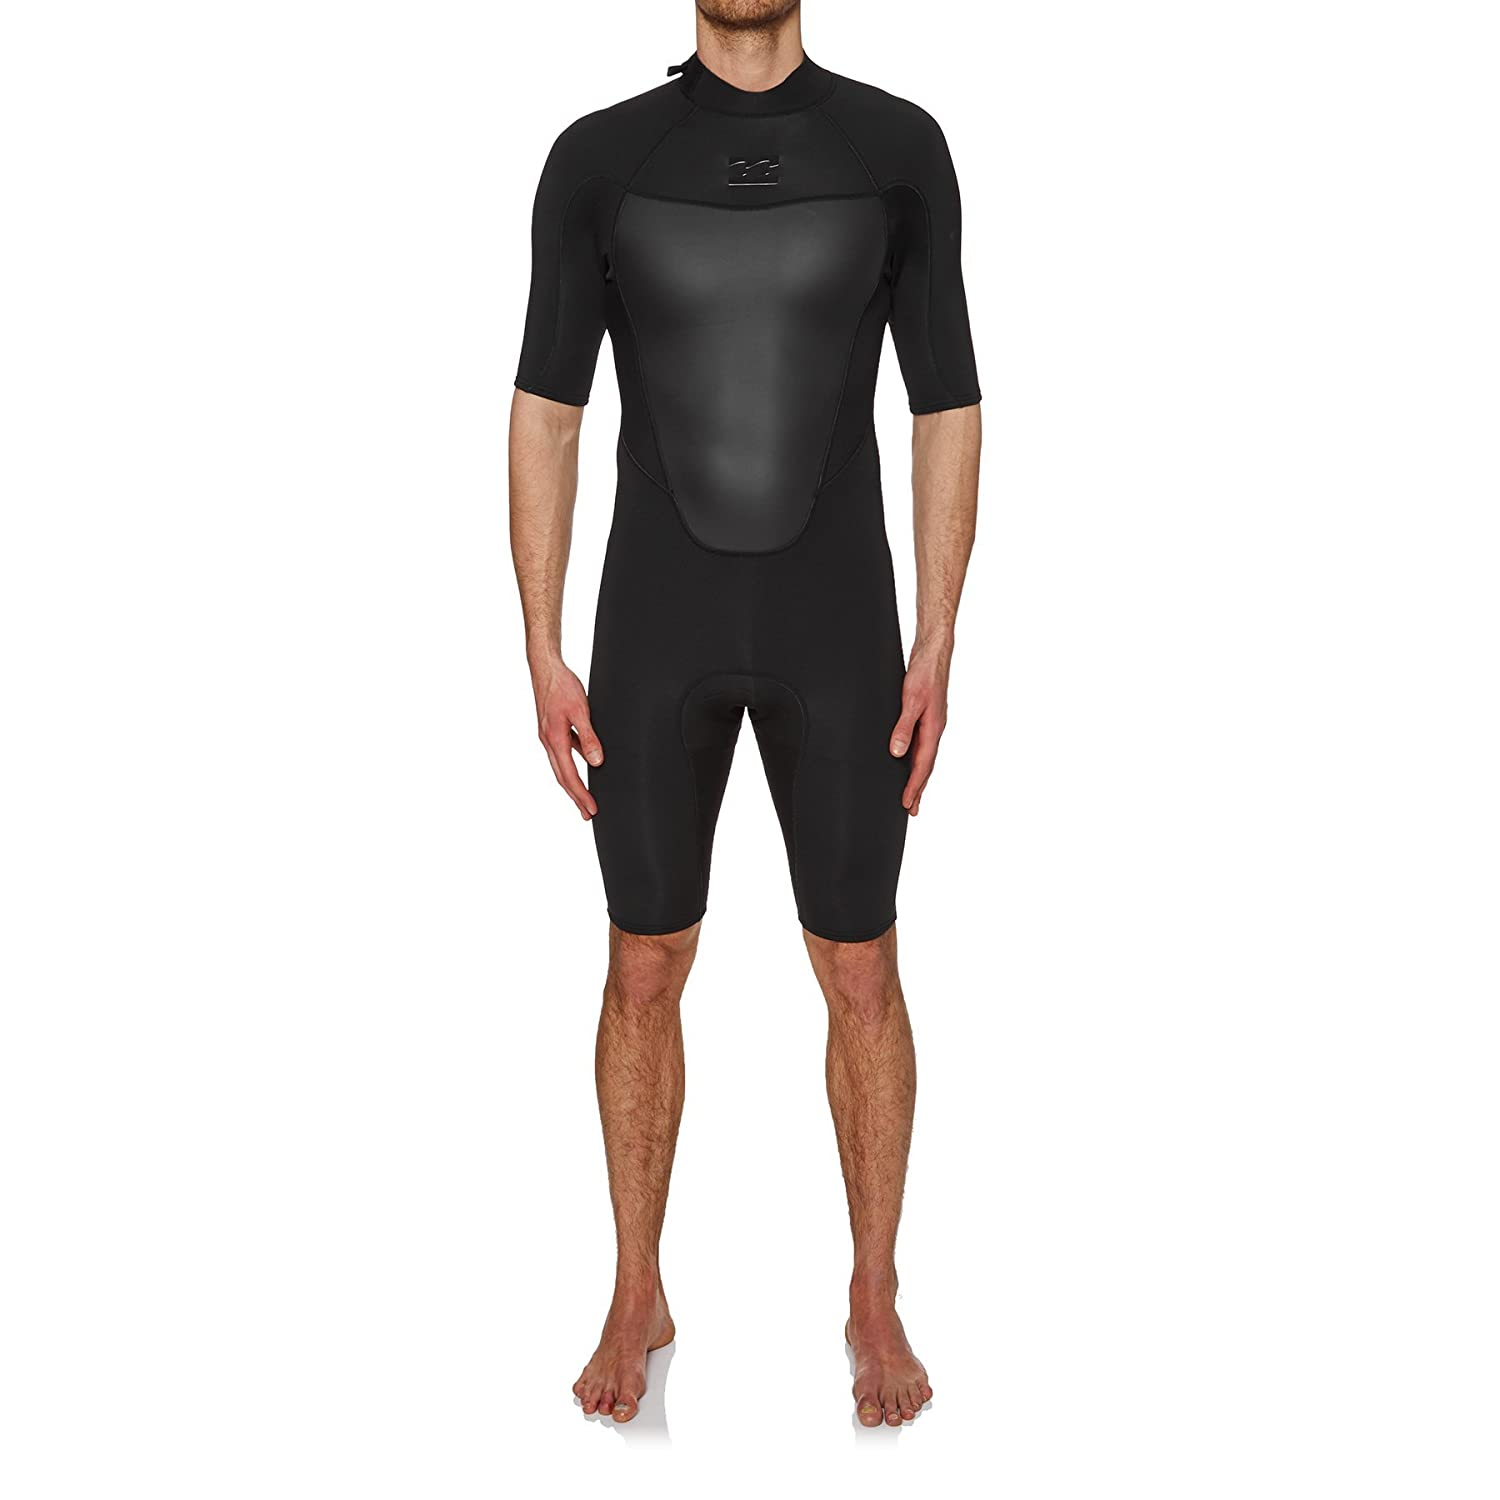 Amazon.com  Billabong 2mm 2018 Absolute Back Zip Short Sleeve Wetsuit Small  Black  Sports   Outdoors 896f5f7a4